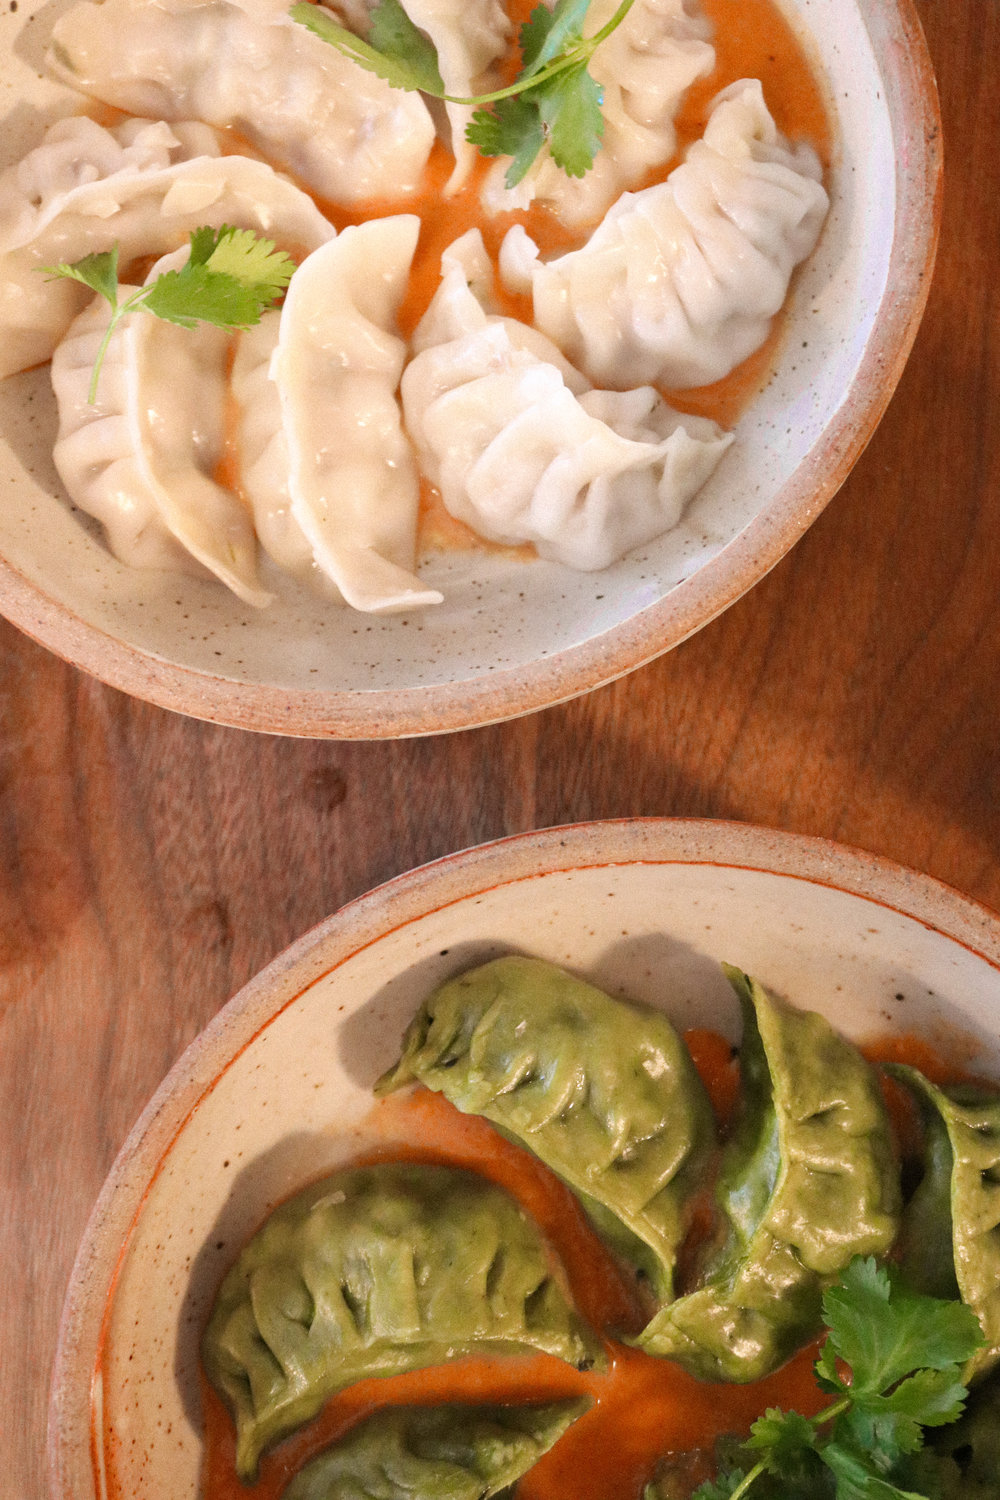 Chicken momo (top left) and vegetable momo (bottom right)